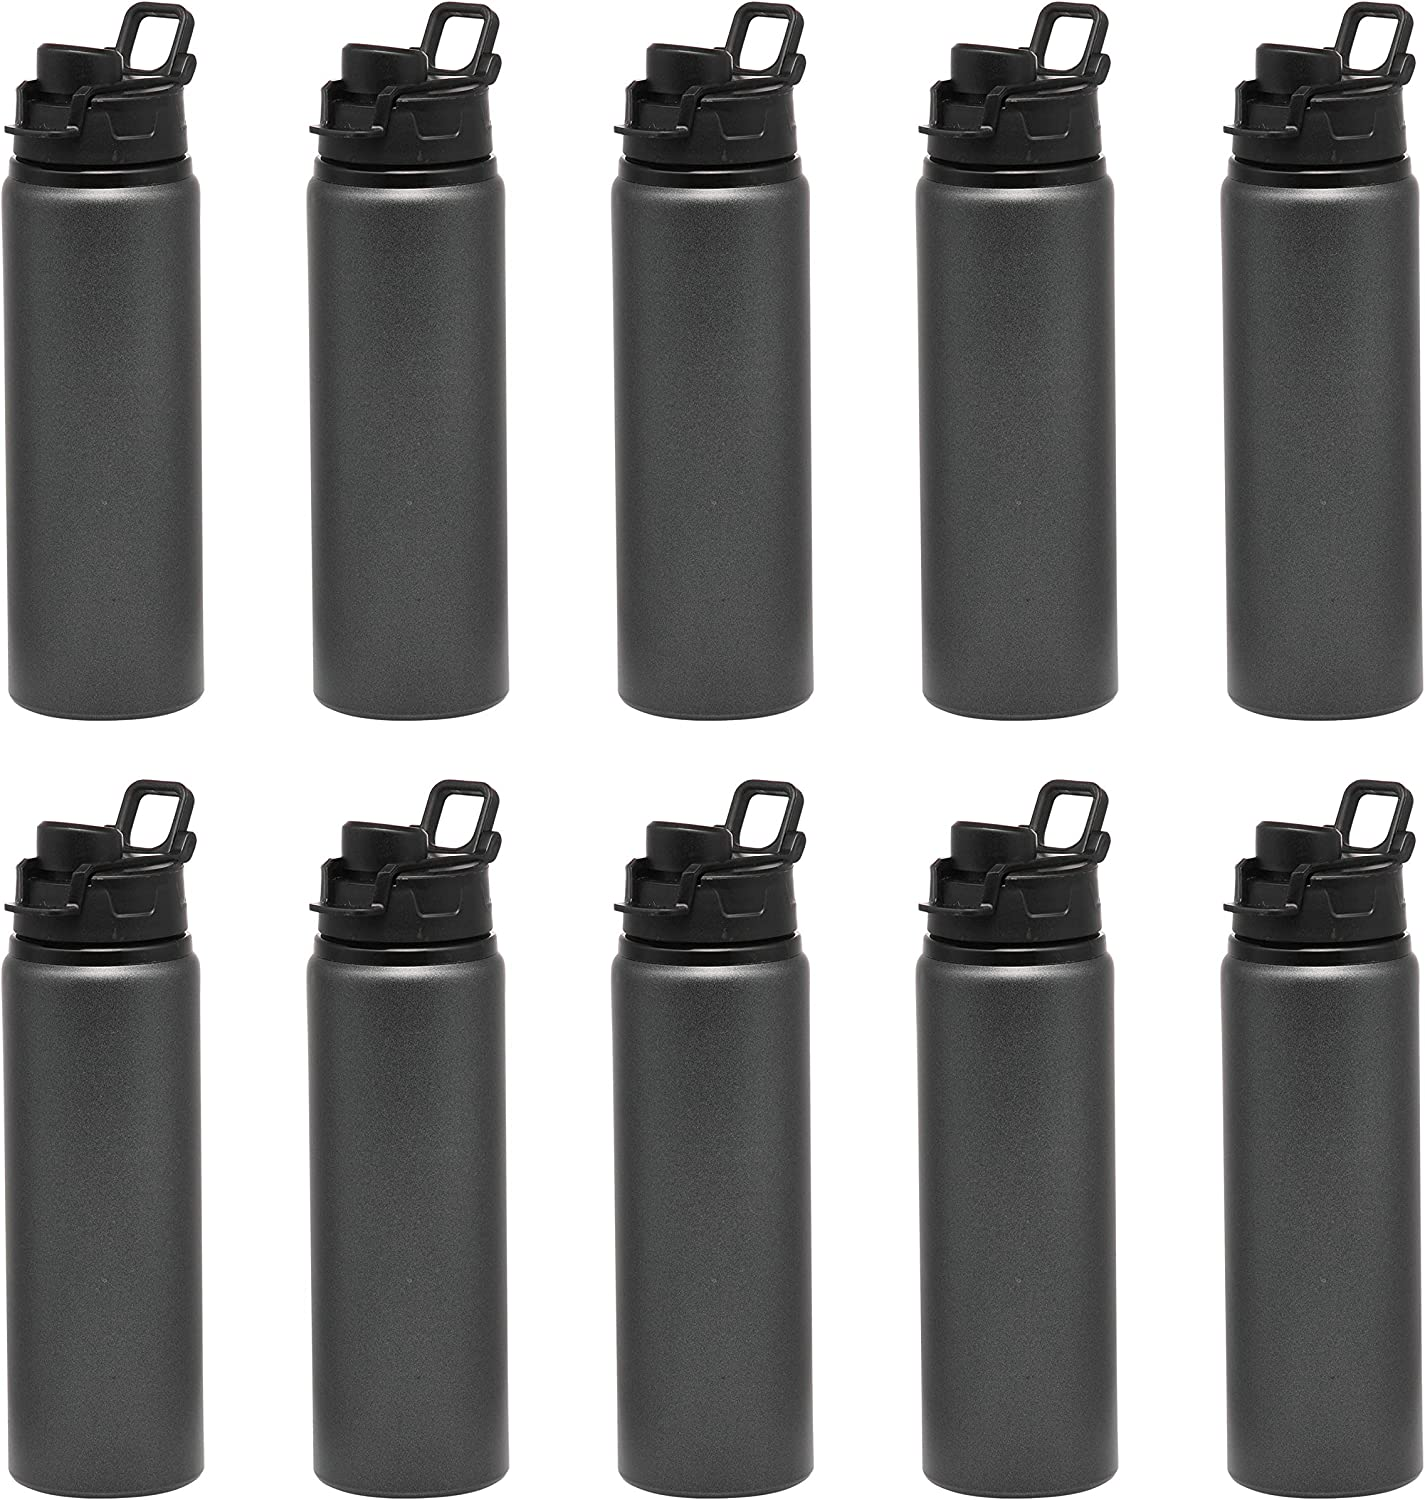 Aluminum Water Bottles with Snap Lids - 25 oz - 10 pack - Bottle with Lid - Great For The Gym, Camping, Hiking, Fishing - Charcoal